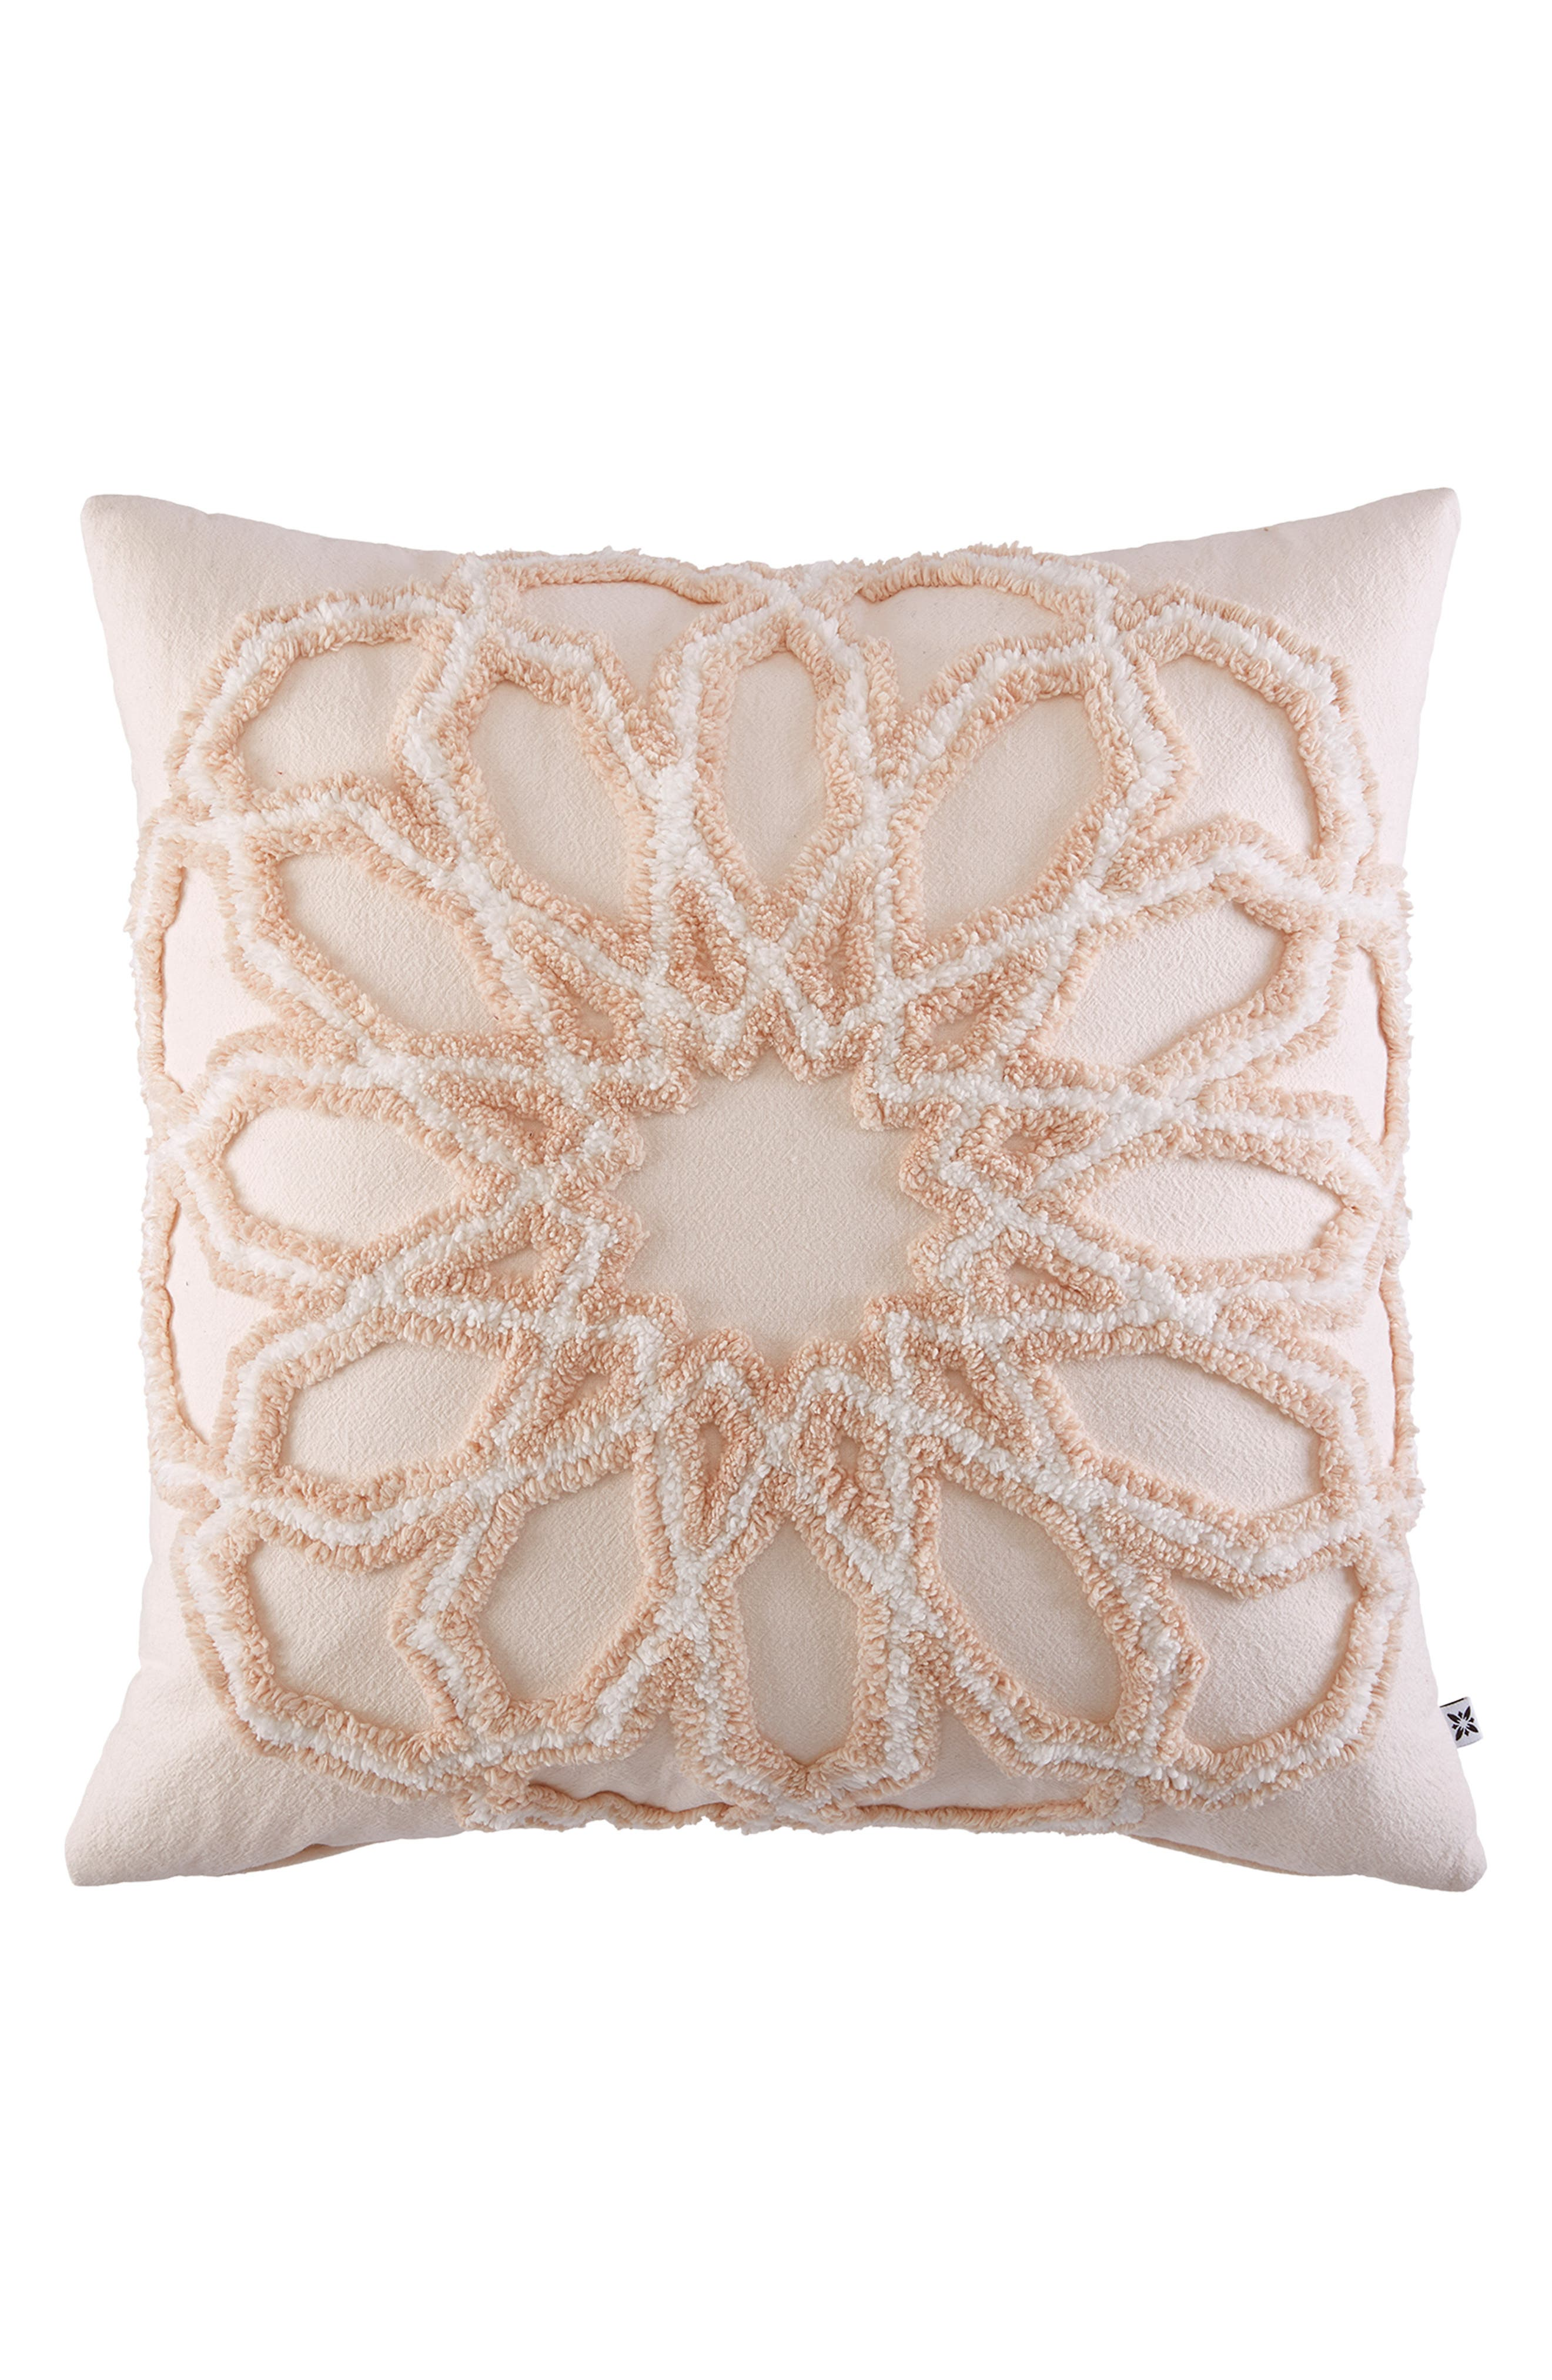 BCBGeneration Marrakesh Tufted Accent Pillow